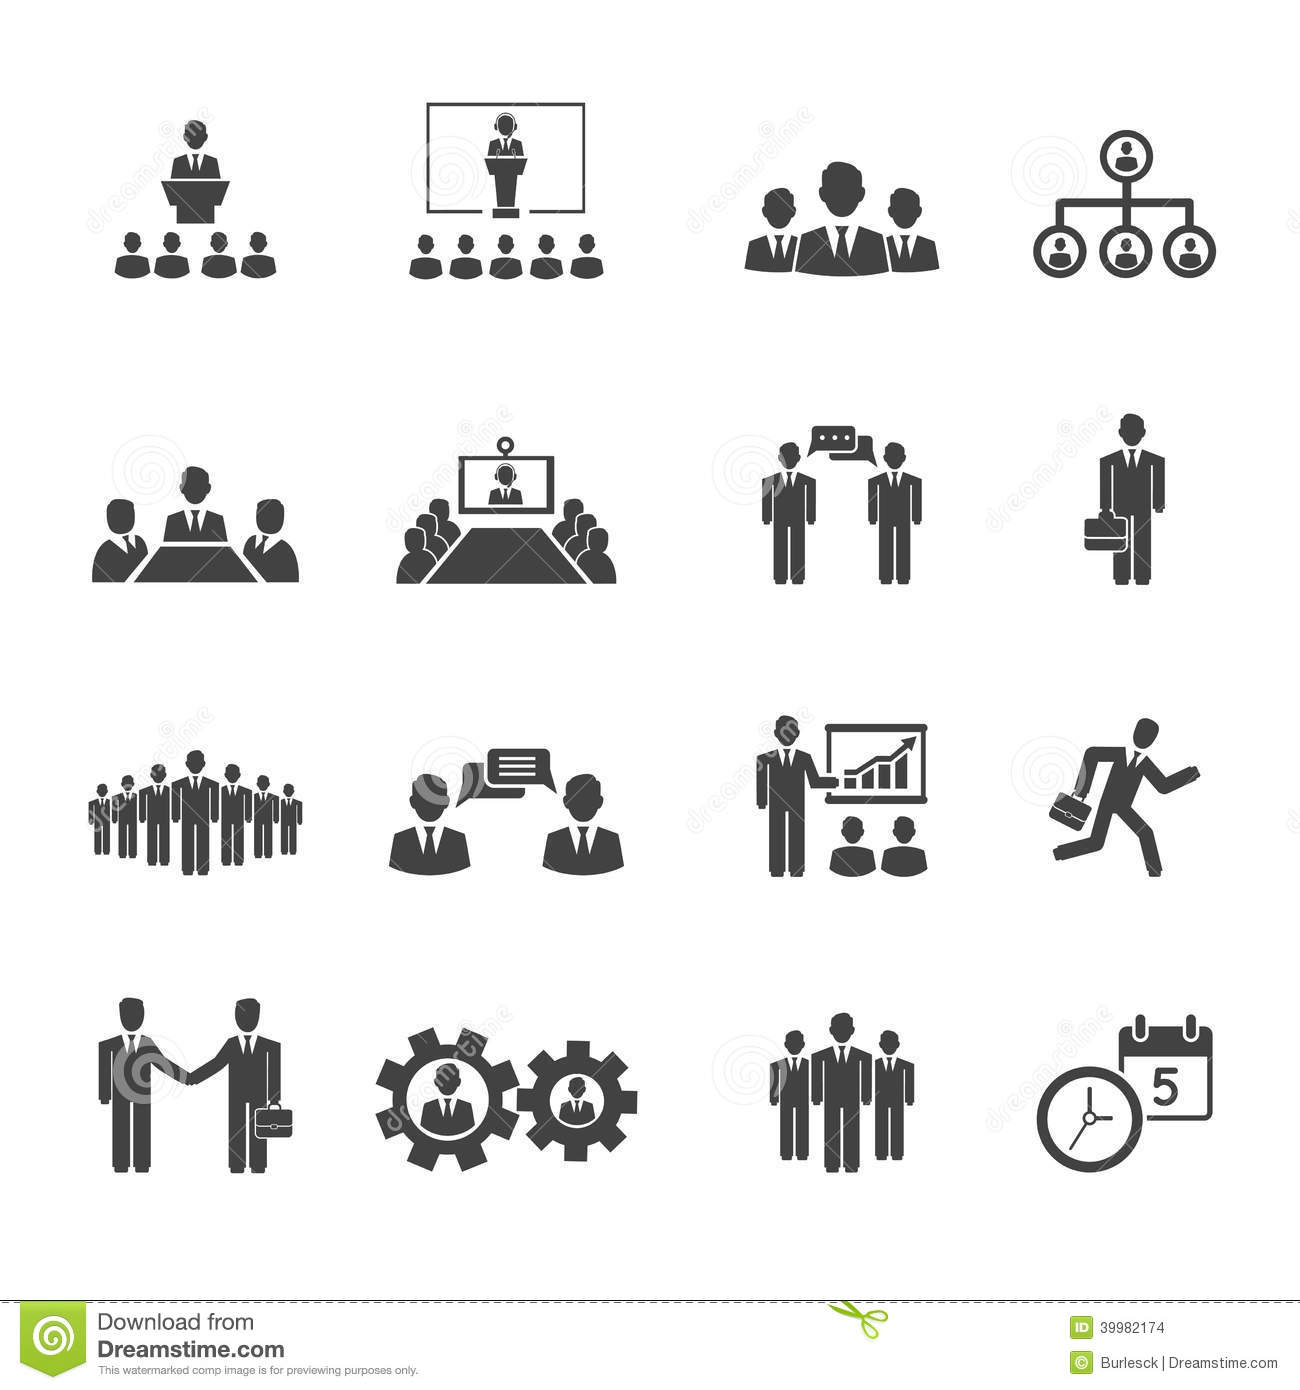 Stock Images Business People Meetings Conferences Icons Vector Showing Training Presentations Conference Table Leadership Teamwork Groups Image39982174 in addition Urbanchallenge Uc01 Alfine 11 2013 in addition Stock Illustration Blacksmith Icons Black Set Man Welding Molding Forging Bending Metal Isolated Vector Illustration Image51842239 in addition Sl Cross Race 2013 together with File PSM V30 D667 Parisian clock 1. on cogs and gears